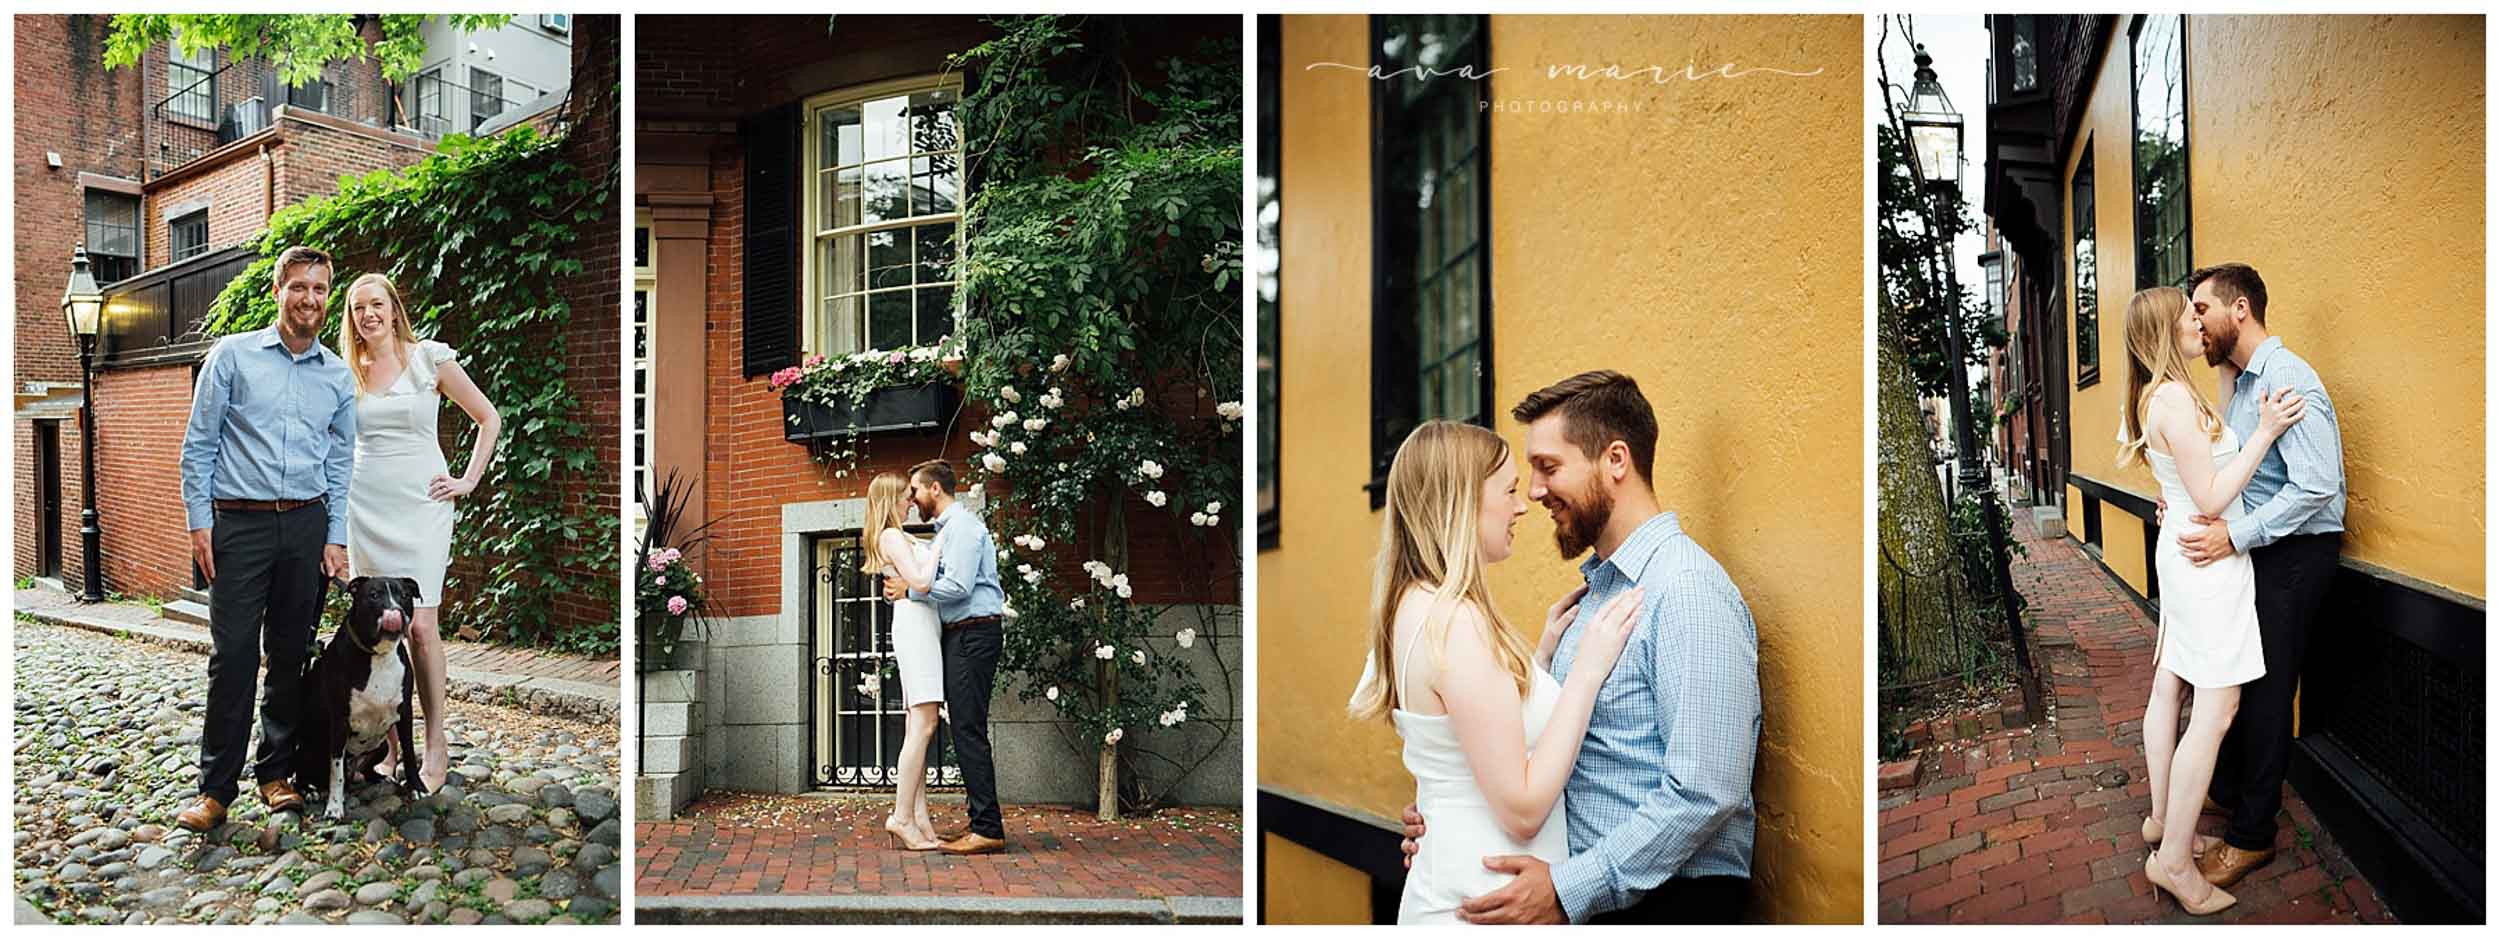 Beacon_Hill_Boston_Engagement_Session_0005.jpg